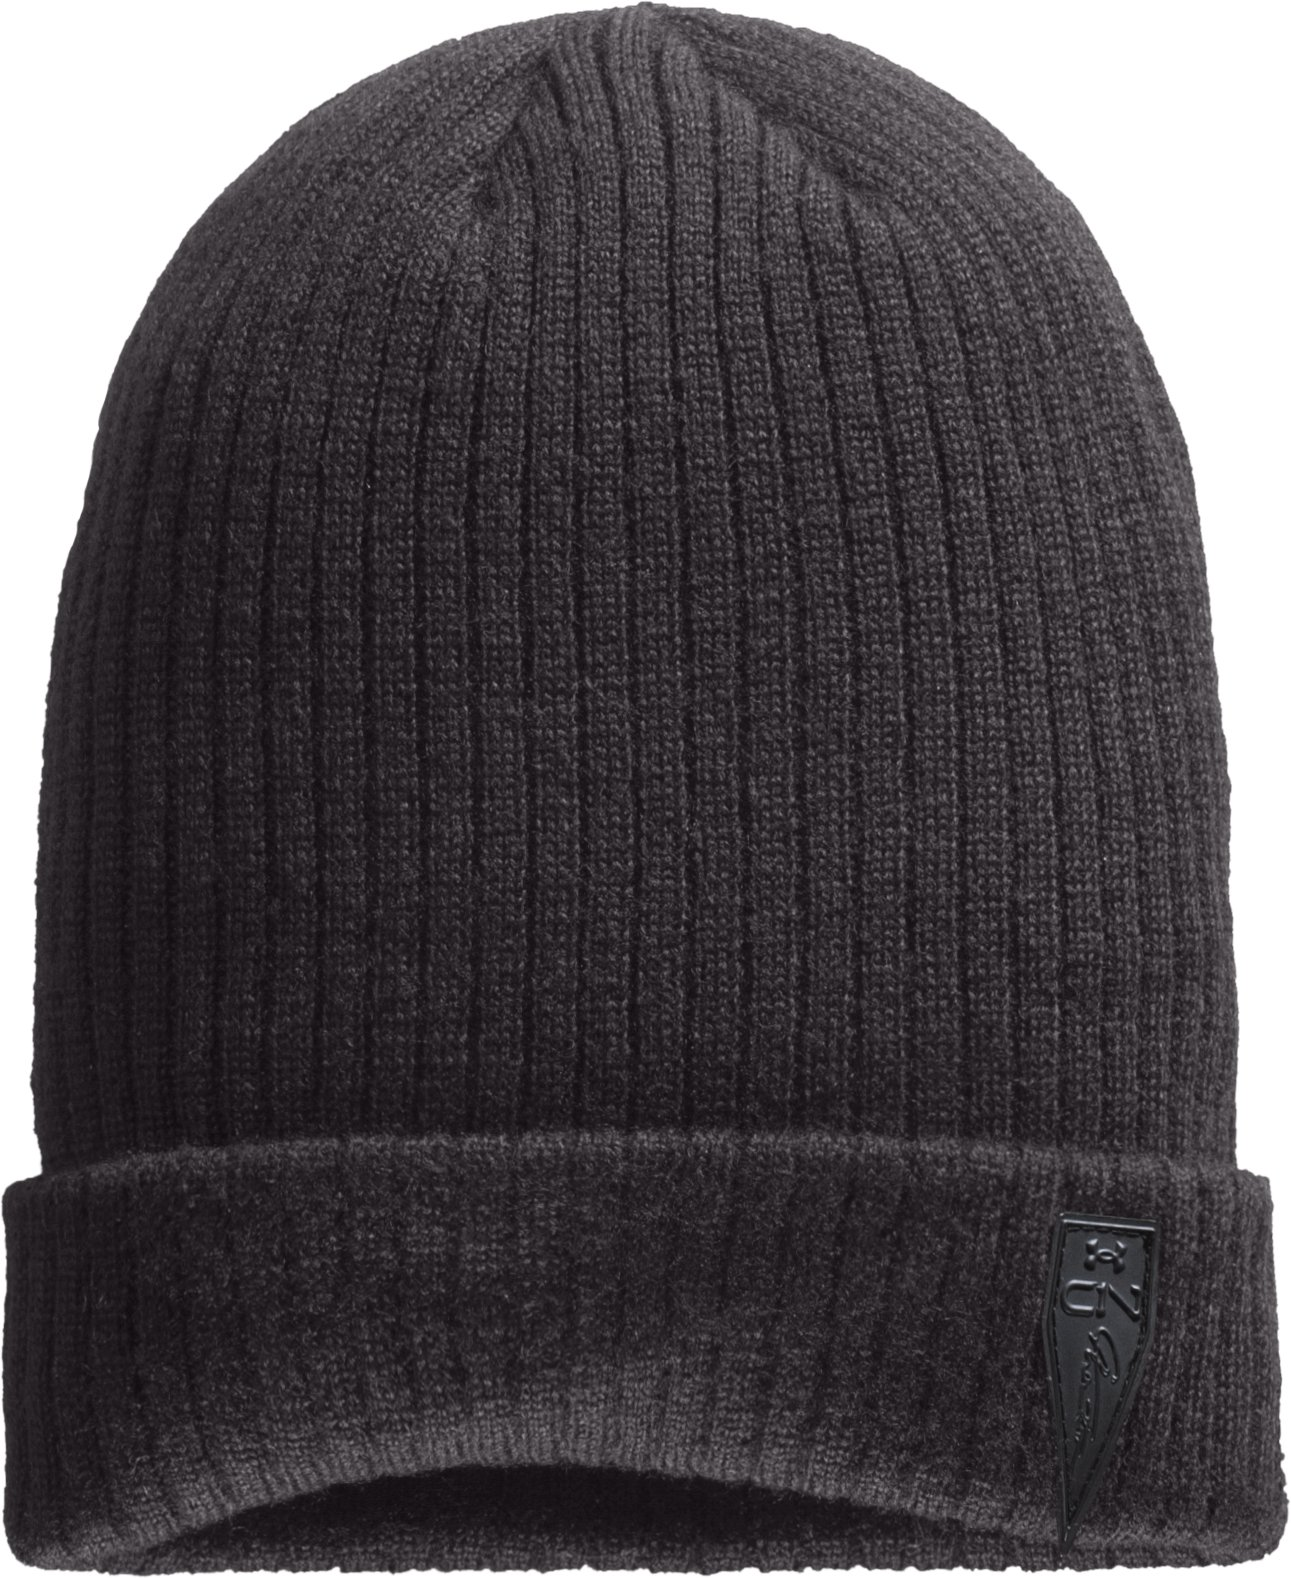 Men's C1N Signature Beanie, Charcoal, zoomed image